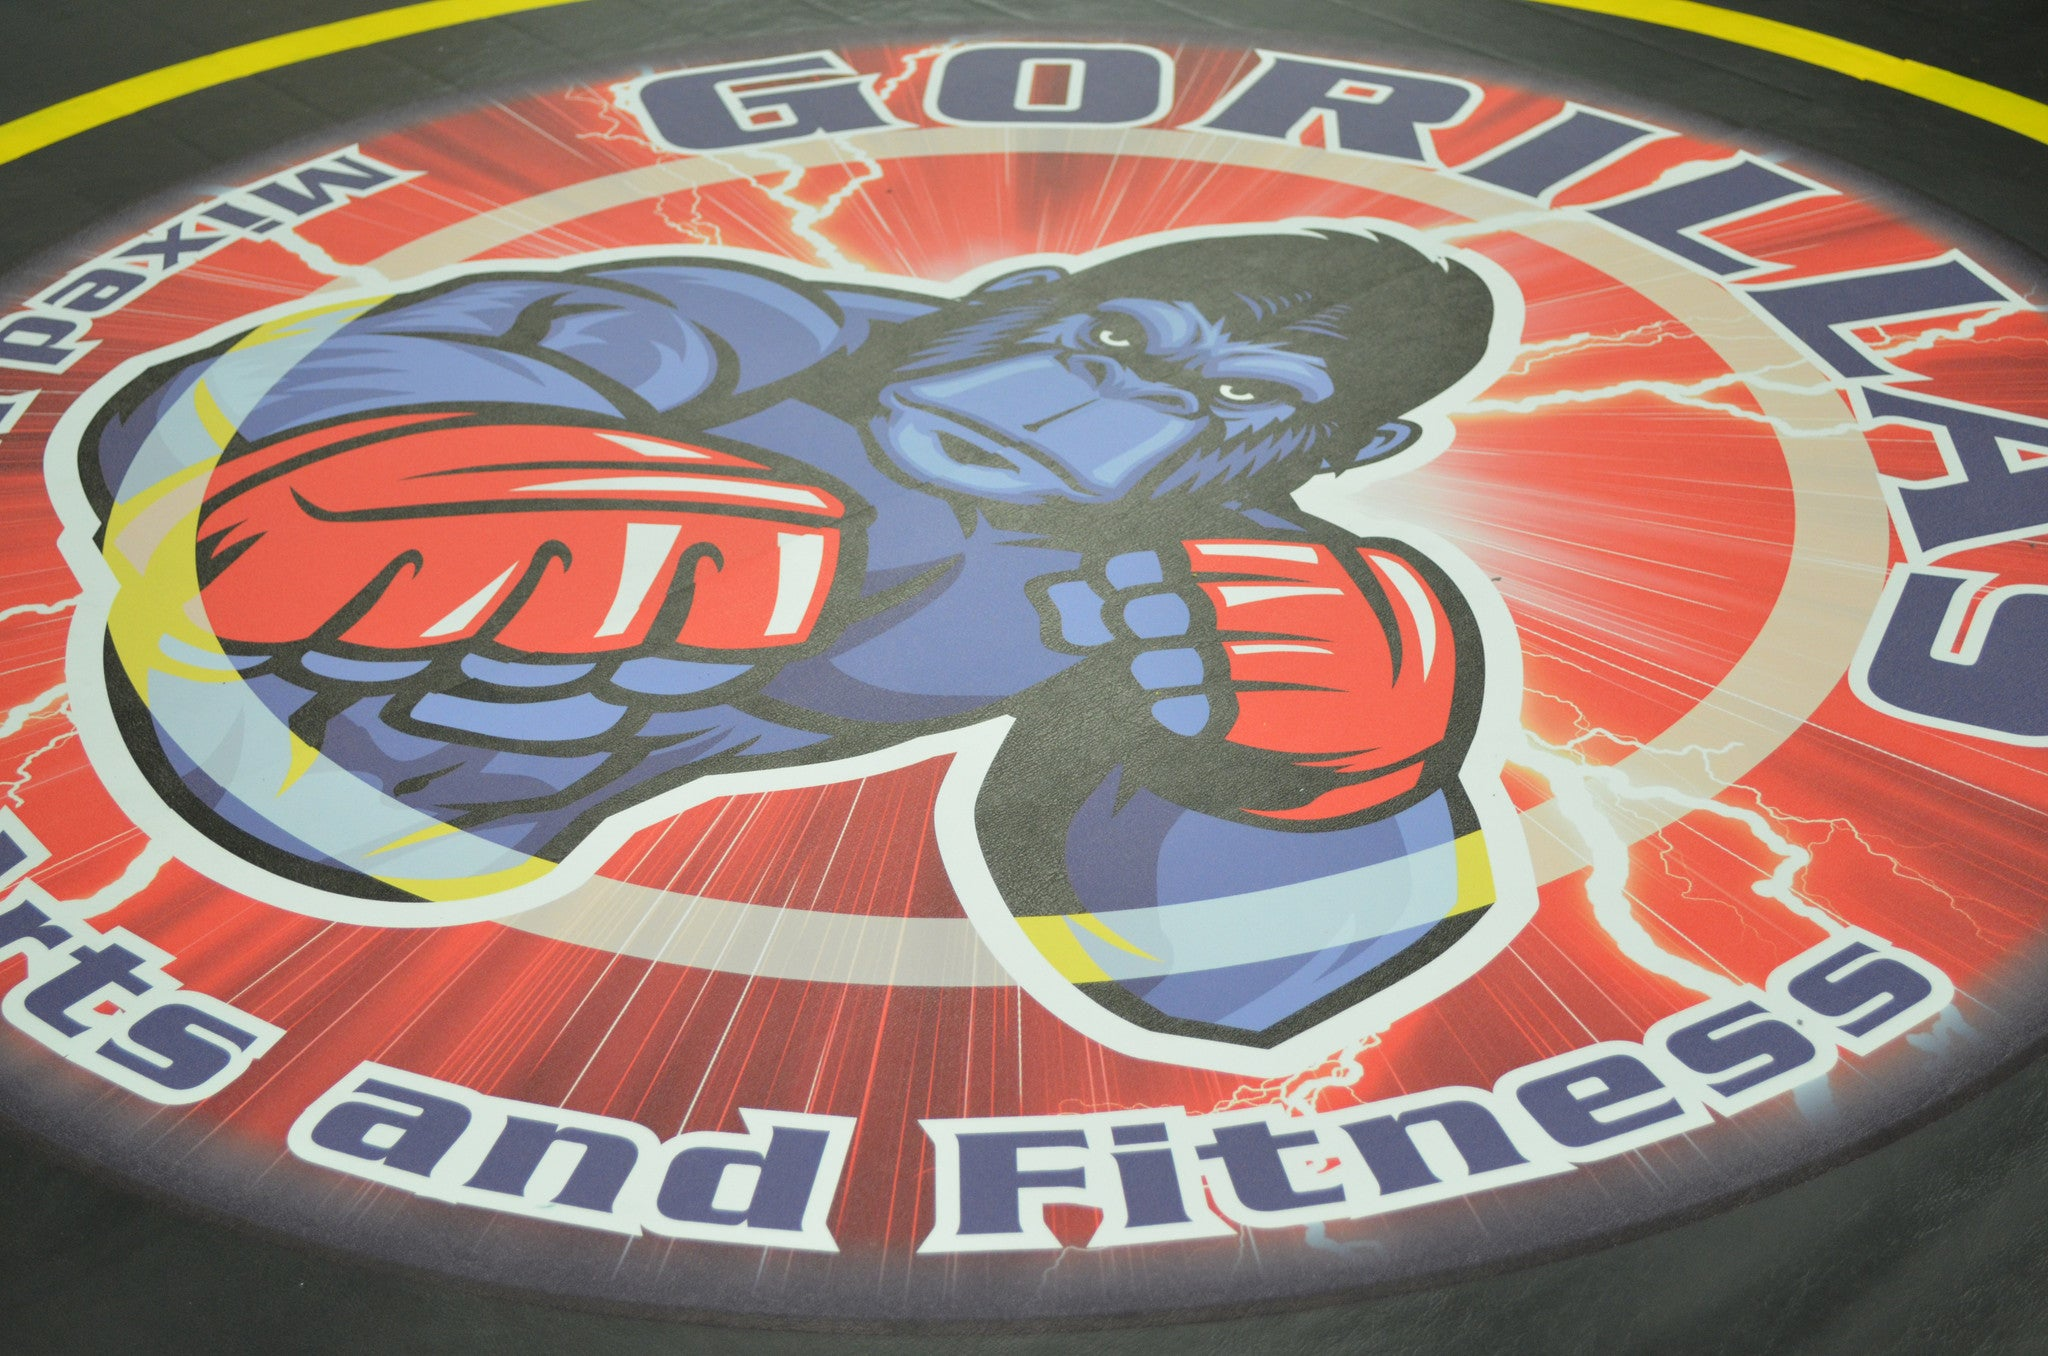 "Digitally Printed 8' x 8' x 1 3/8"" Roll-Up Wrestling Mat"